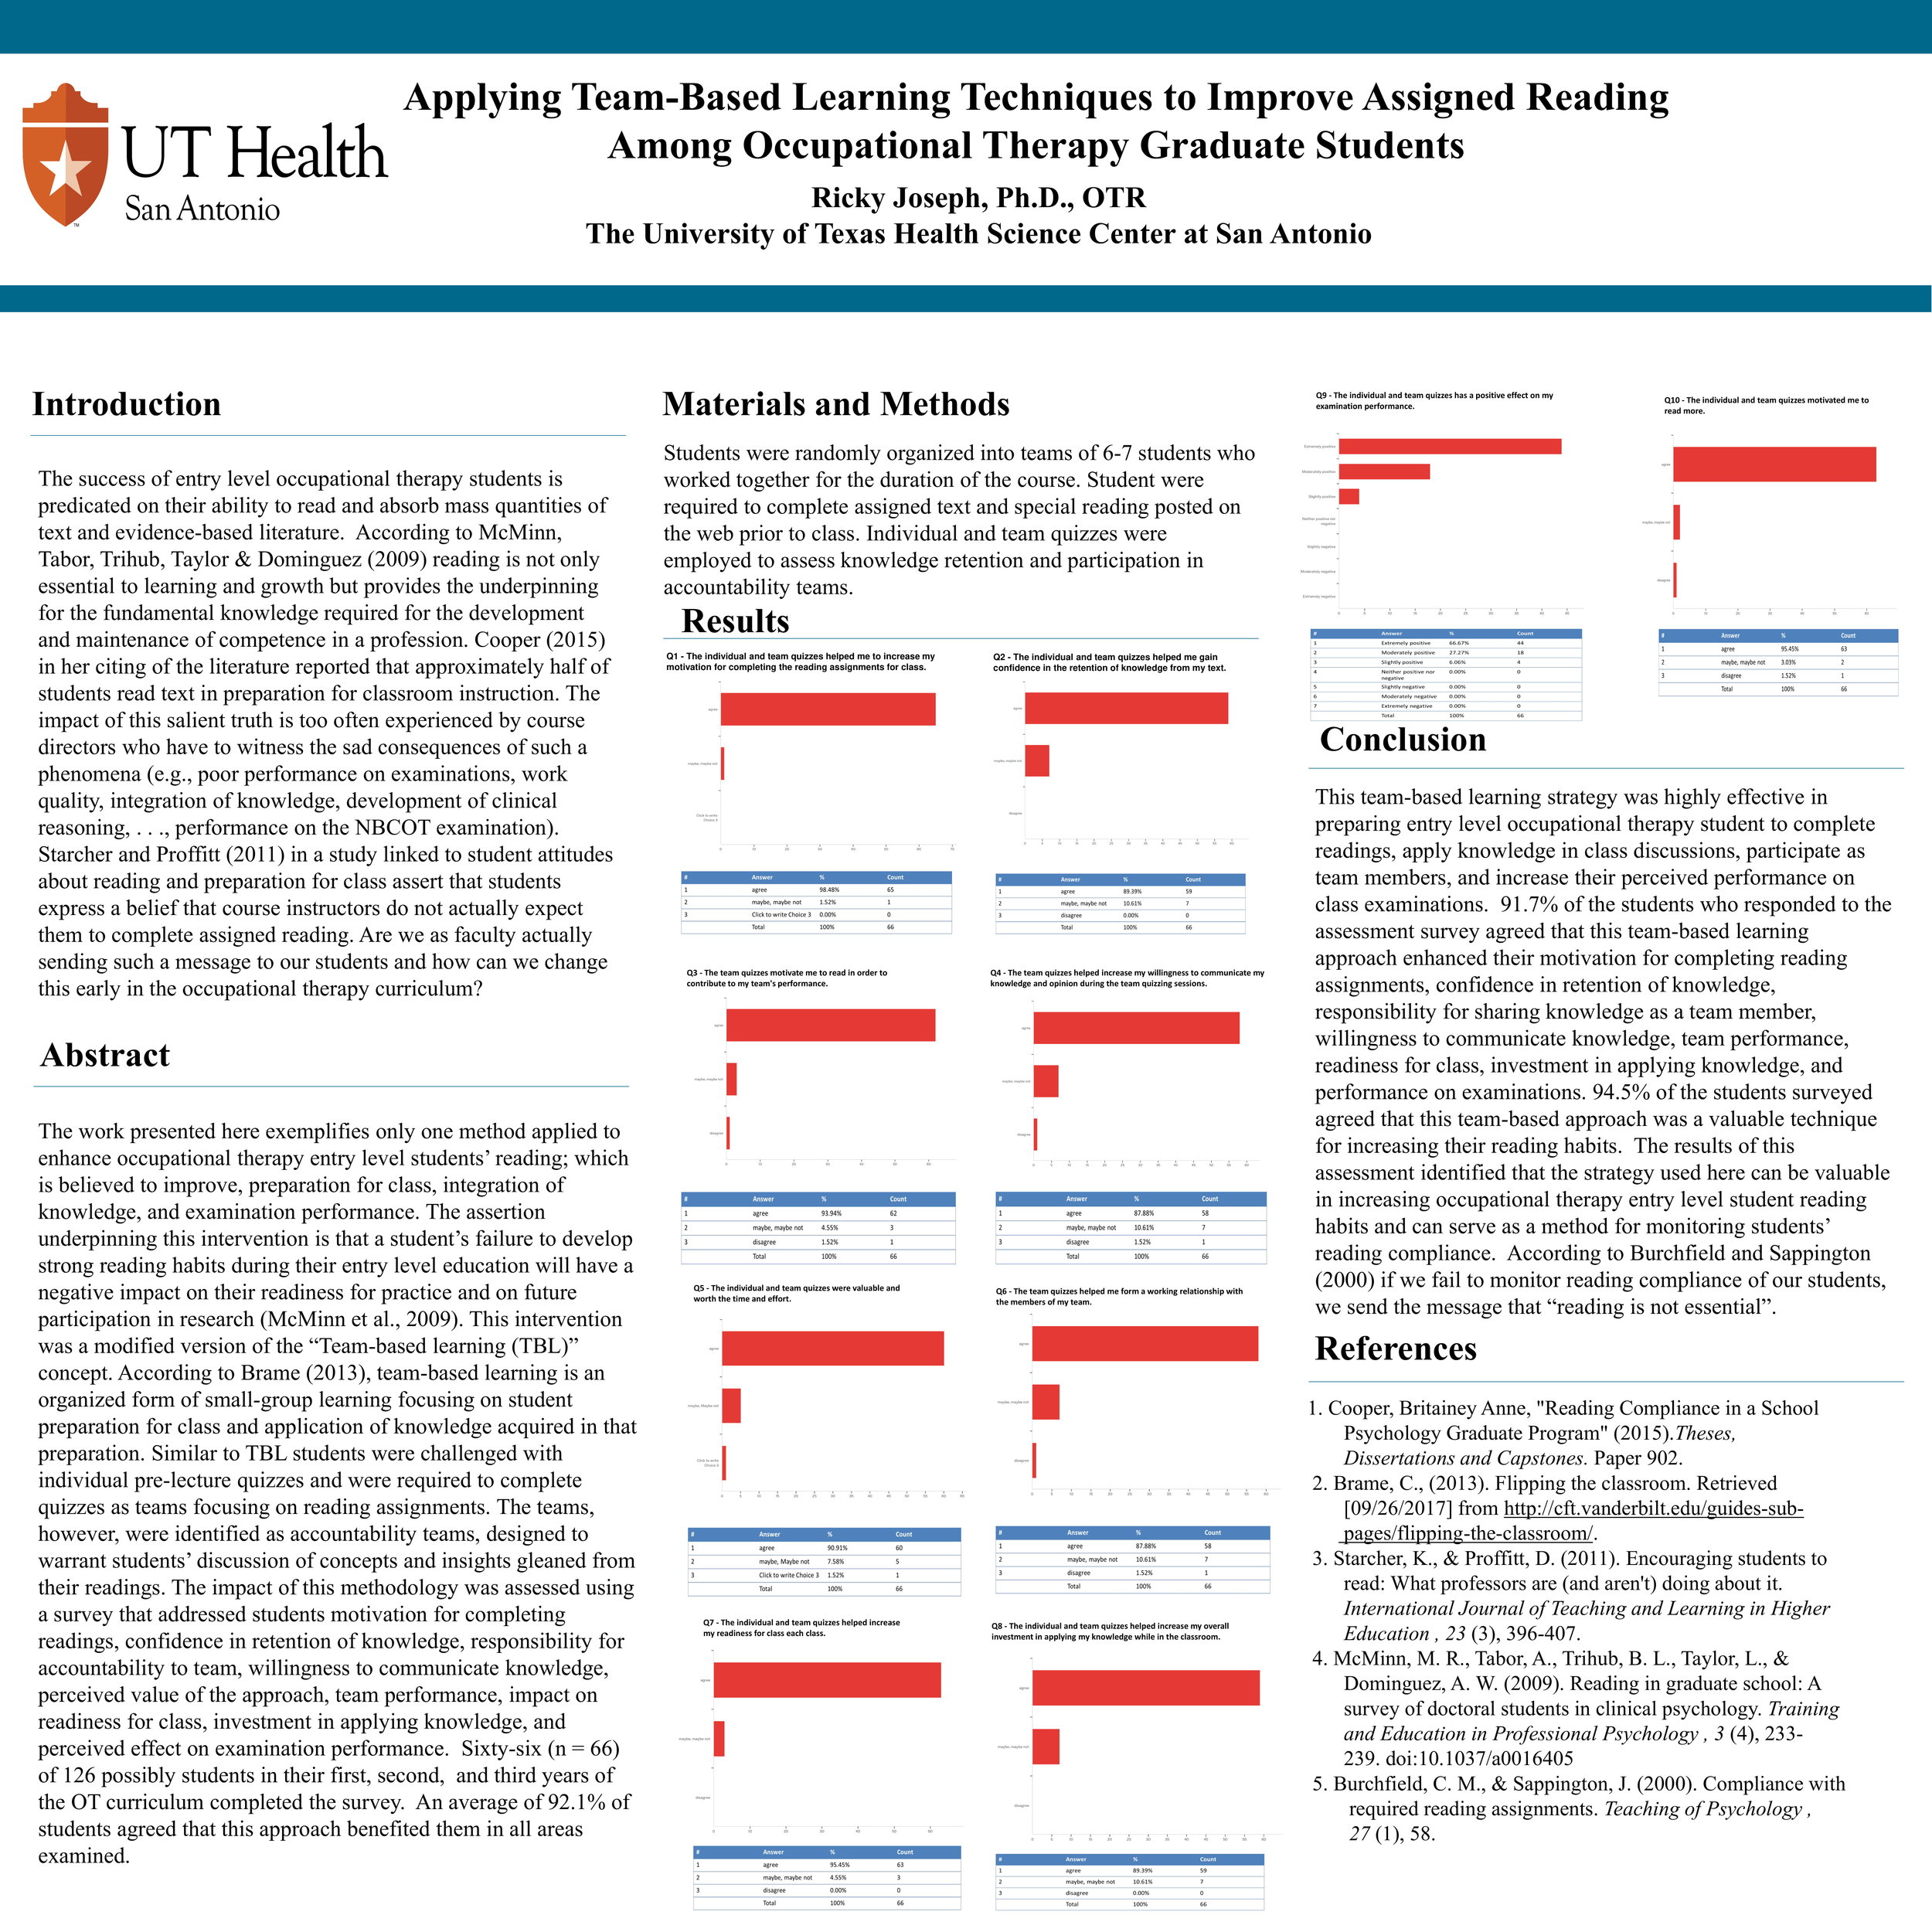 Applying Team-Based Learning Techniques to Improve Assigned Reading Among Occupational Therapy Graduate Students  Ricky Joseph, Ph.D., OTR